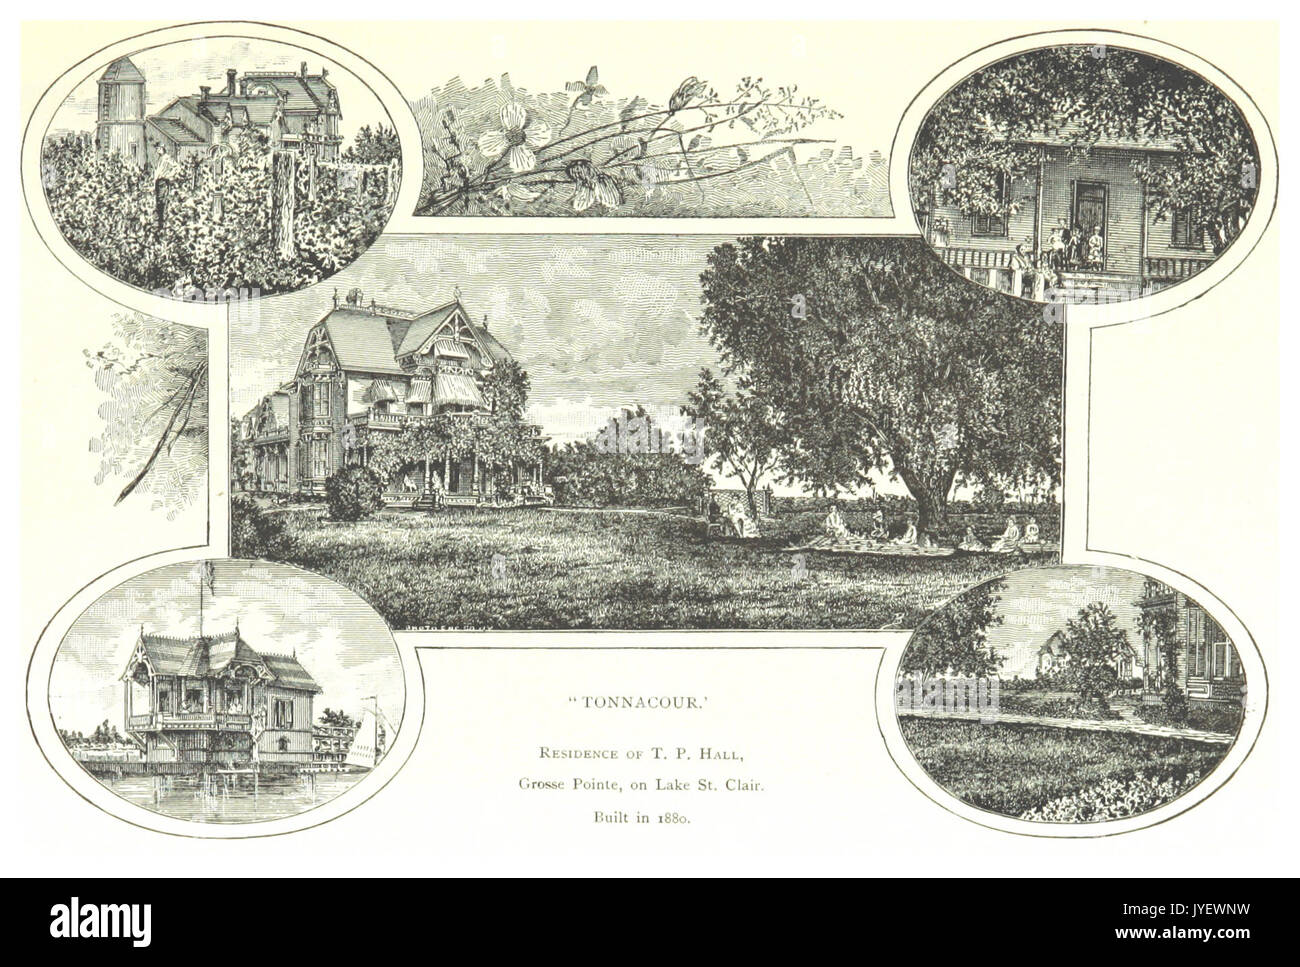 FARMER(1884) Detroit, p505 TONNACOUR   THE RESIDENCE OF T.P. HALL, GROSSE POINTE, ON LAKE ST. CLAIR. BUILT IN 1880 - Stock Image